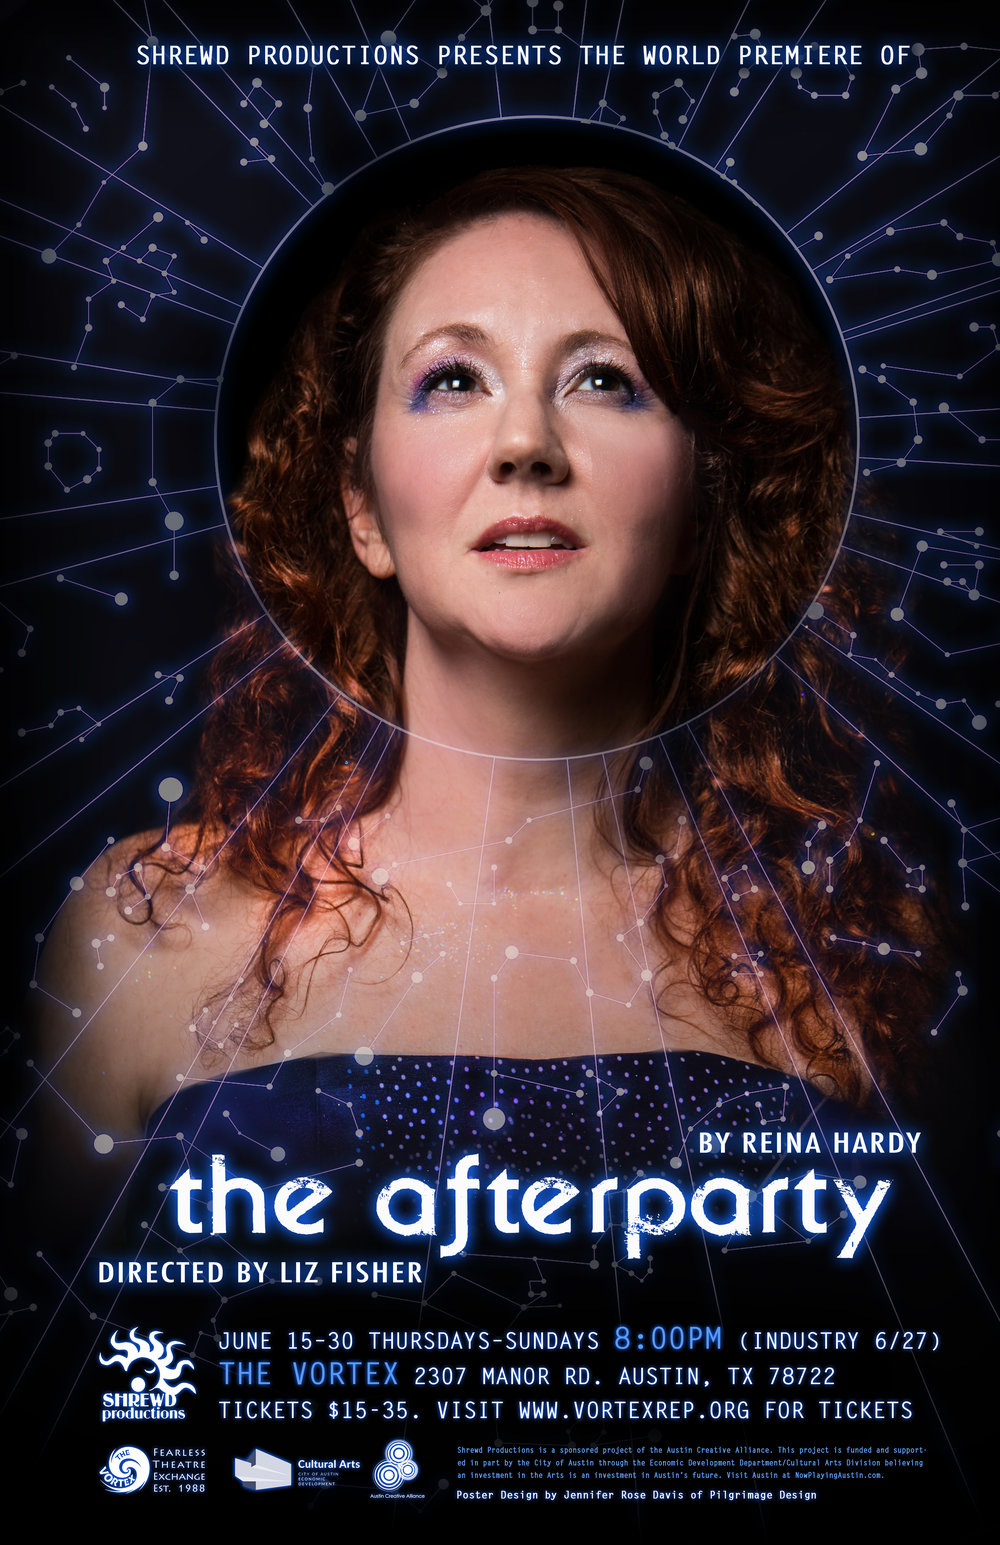 The Afterparty Poster Claire.jpg